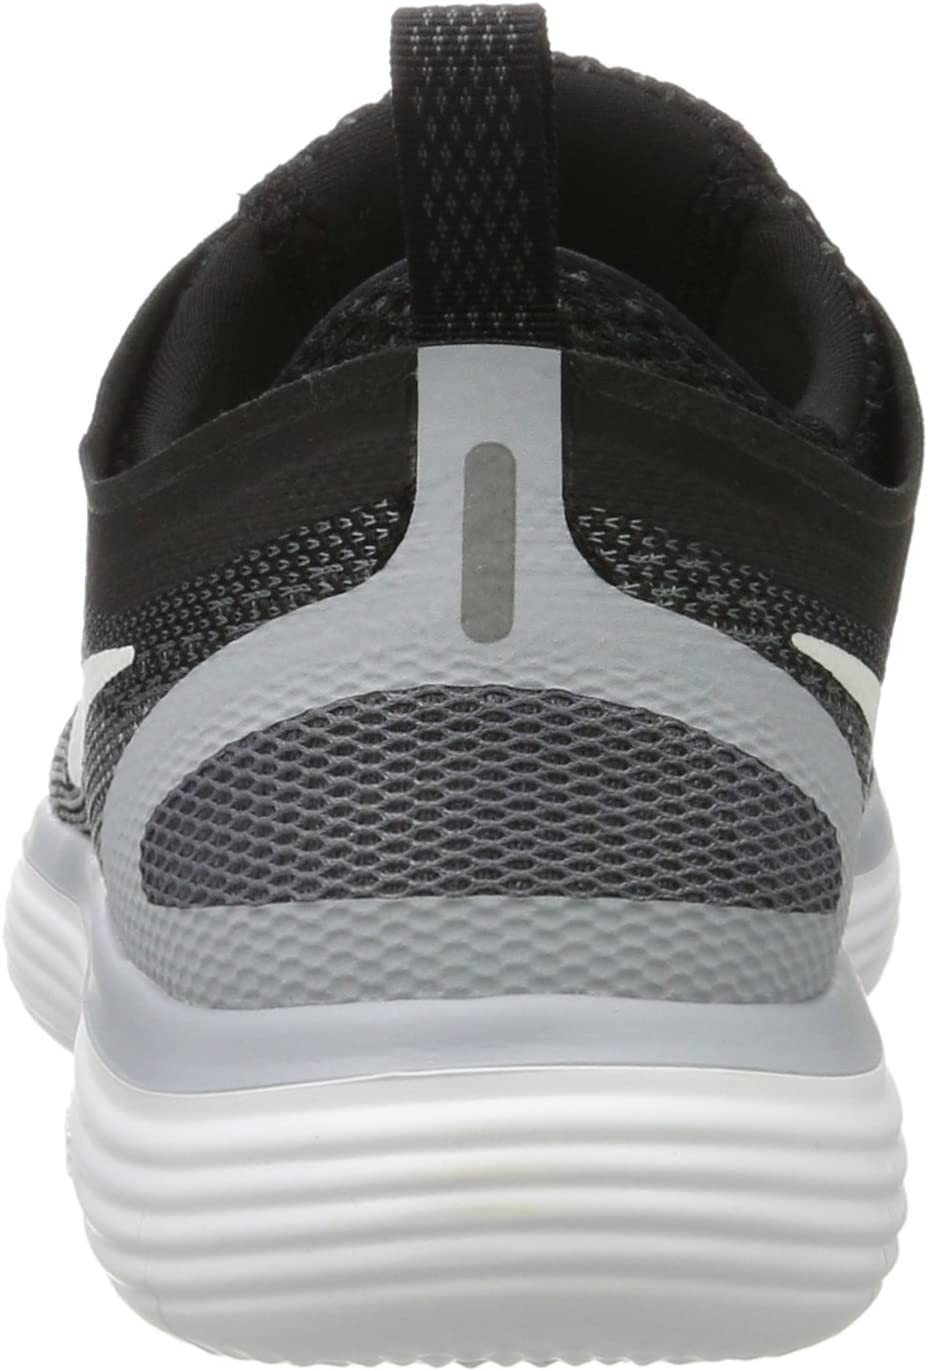 NIKE FREE RUN DISTANCE 2 W Sportschoenen dames Zwart/Wit Running/trail Zwart / Wit